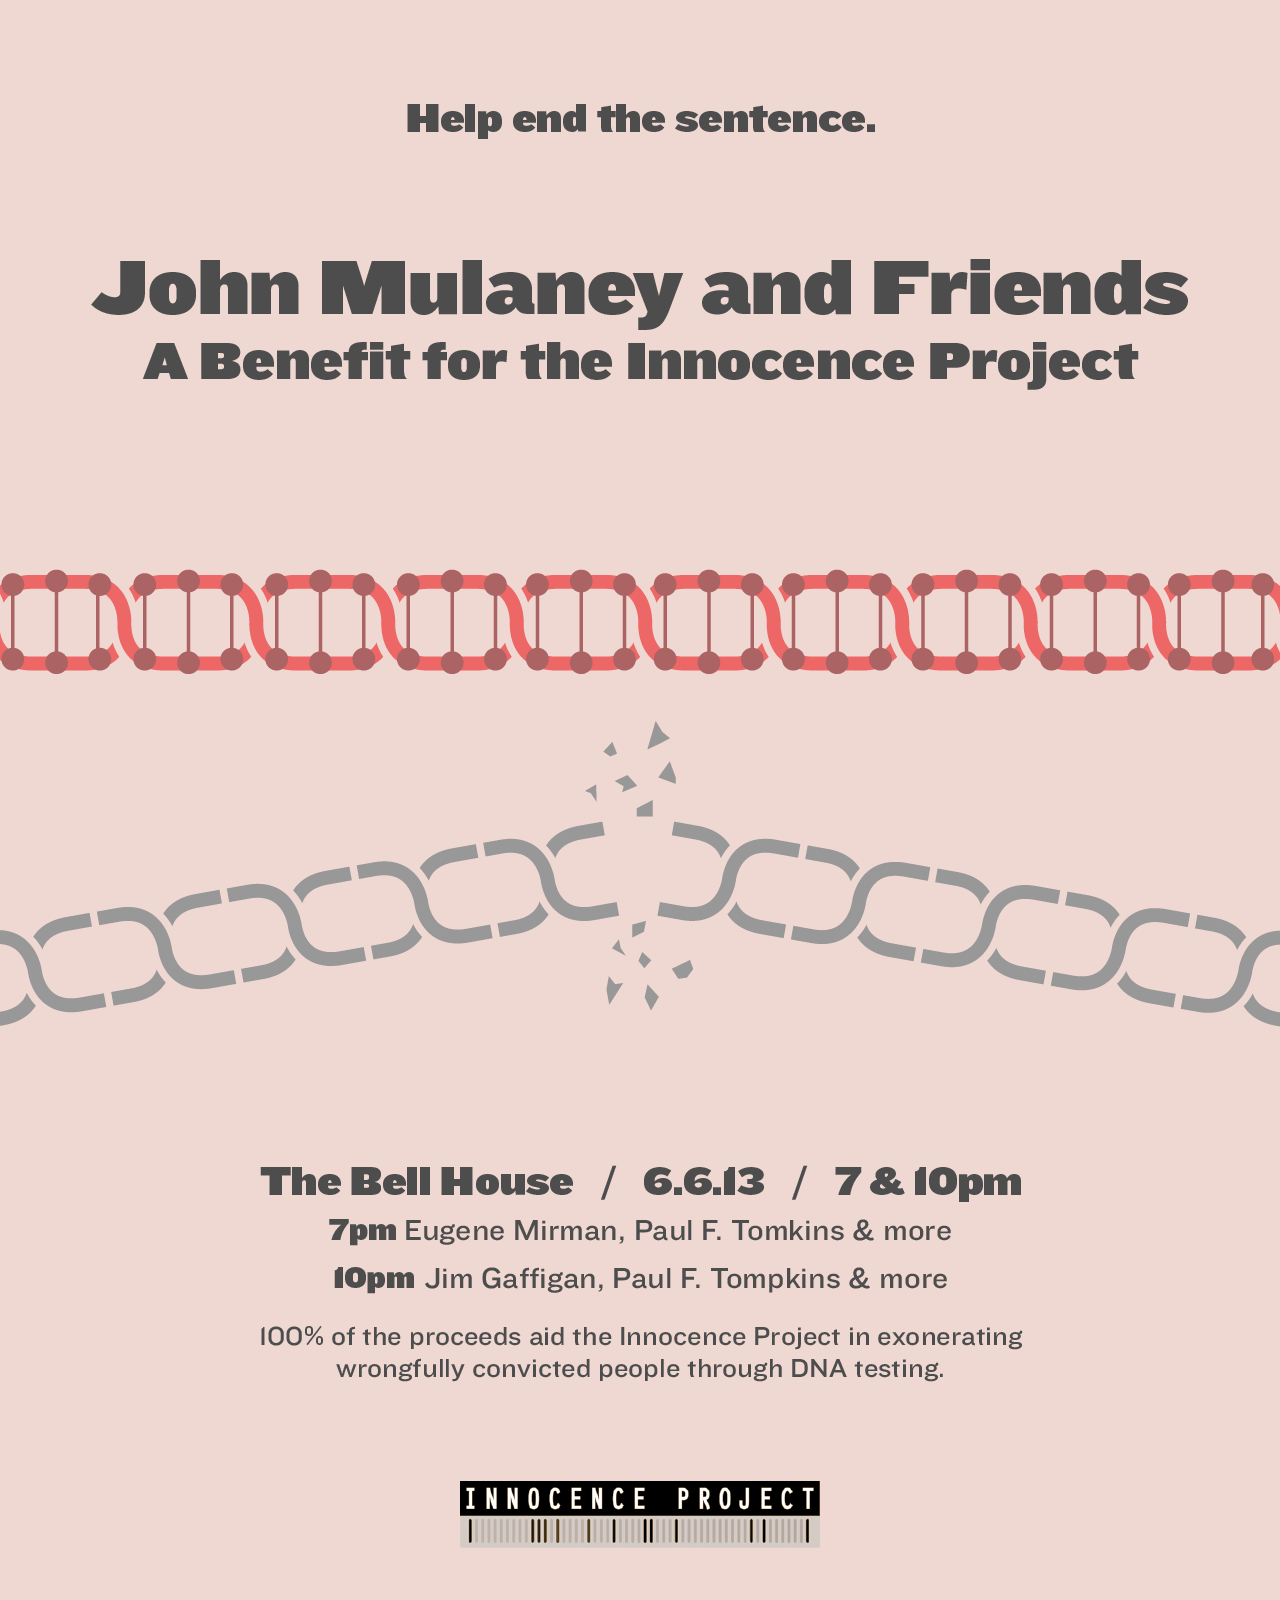 cat:  annamarie:  John and I are putting on a benefit for the Innocence Project, a national litigation and public policy organization dedicated to exonerating wrongfully convicted people through DNA testing and reforming the criminal justice system. The Innocence Project has thus far helped to exonerate 300 people, some of who served time on death row.  These people served an average of 13 years before their exoneration and release.  Help us help those who are unjustly imprisoned.  Come see John Mulaney and Friends at the Bell House on June 6th; 100% of the proceeds go toward DNA testing for the wrongfully accused.  The early show is already sold out, but there are still tickets available for the late show HERE.  If you can't make it to the show but still want to help us out, please make a donation to the INNOCENCE PROJECT. We hope to see you there!  I am 100% going to this show! Some BFFs from Virginia are even coming up to attend.